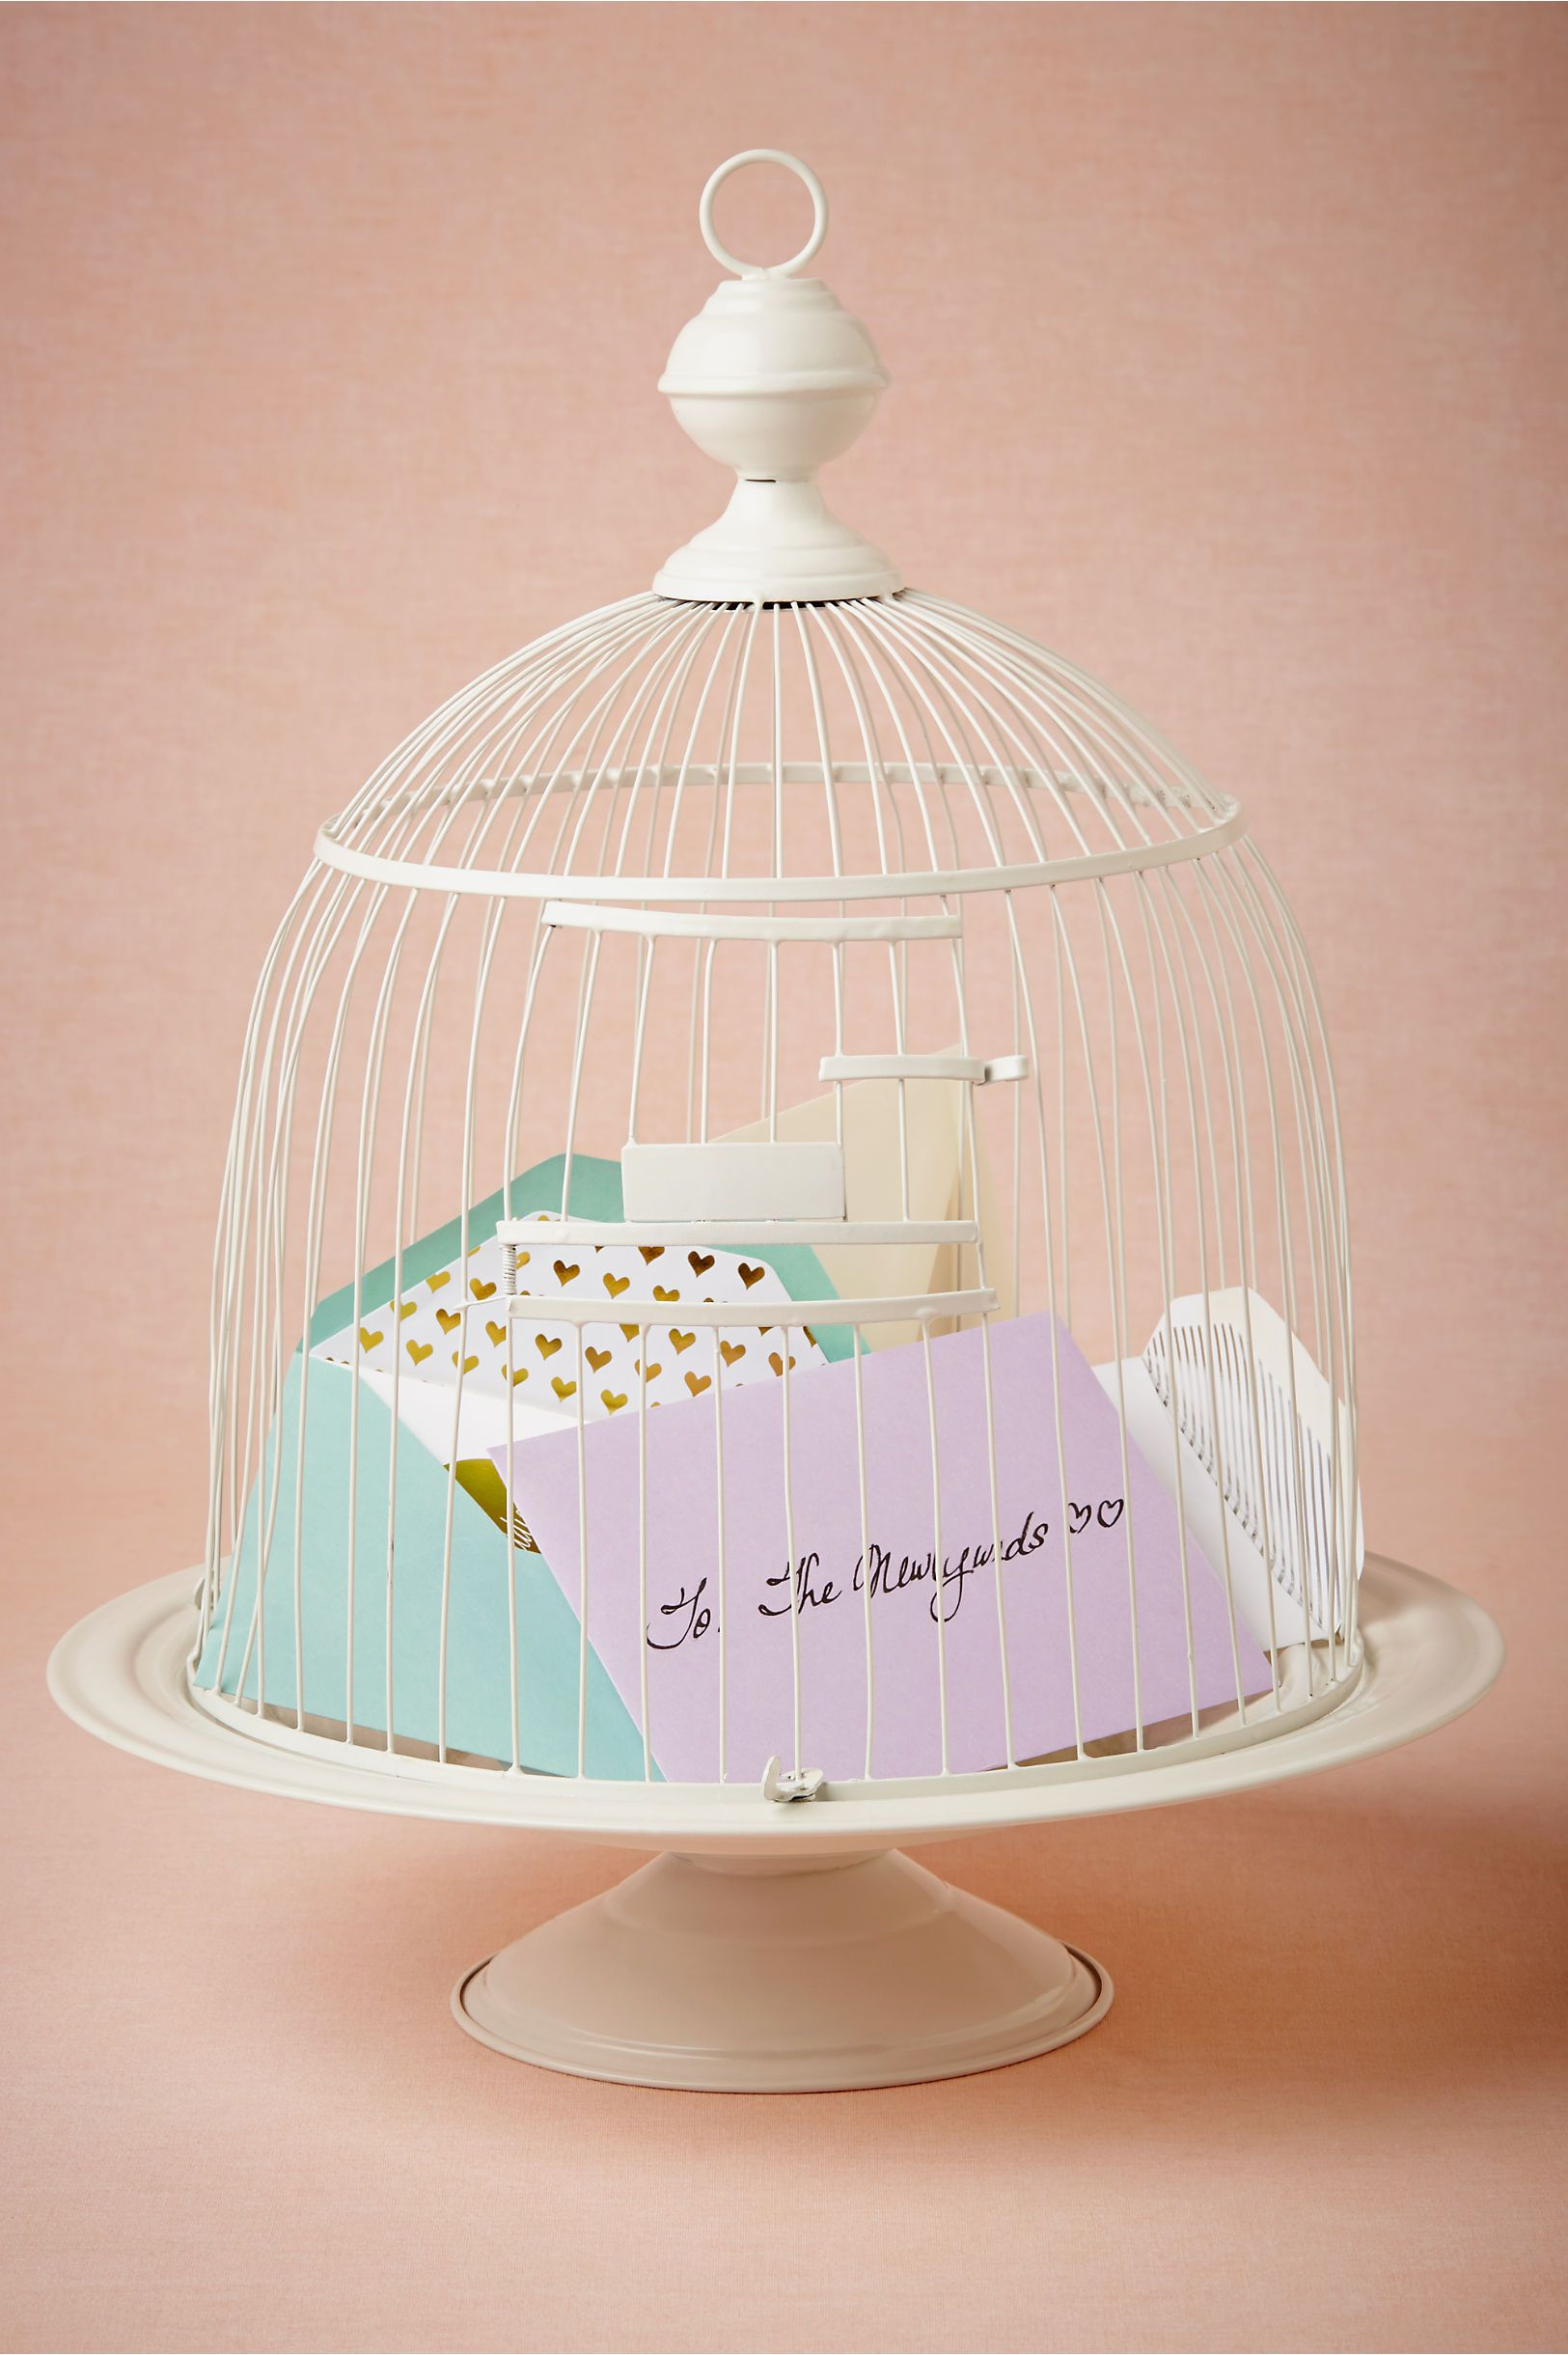 Birdcage Envelope Holder In D Cor Signage Place Cards &